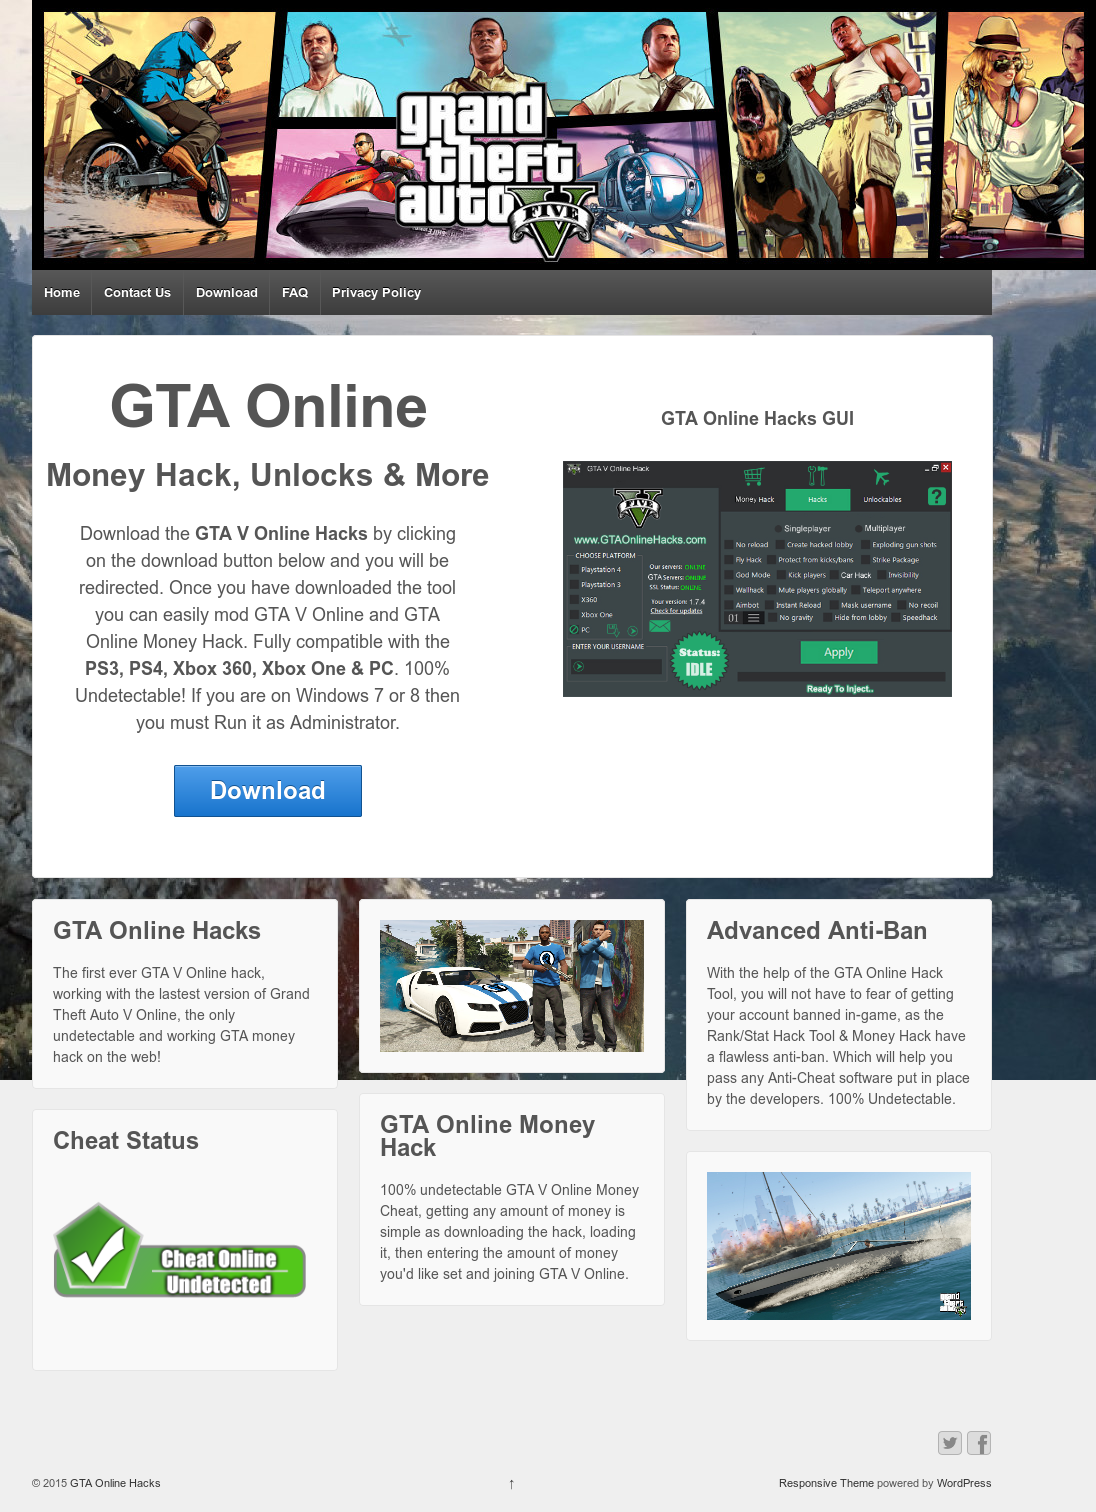 Gta Online Hacks Competitors, Revenue and Employees - Owler